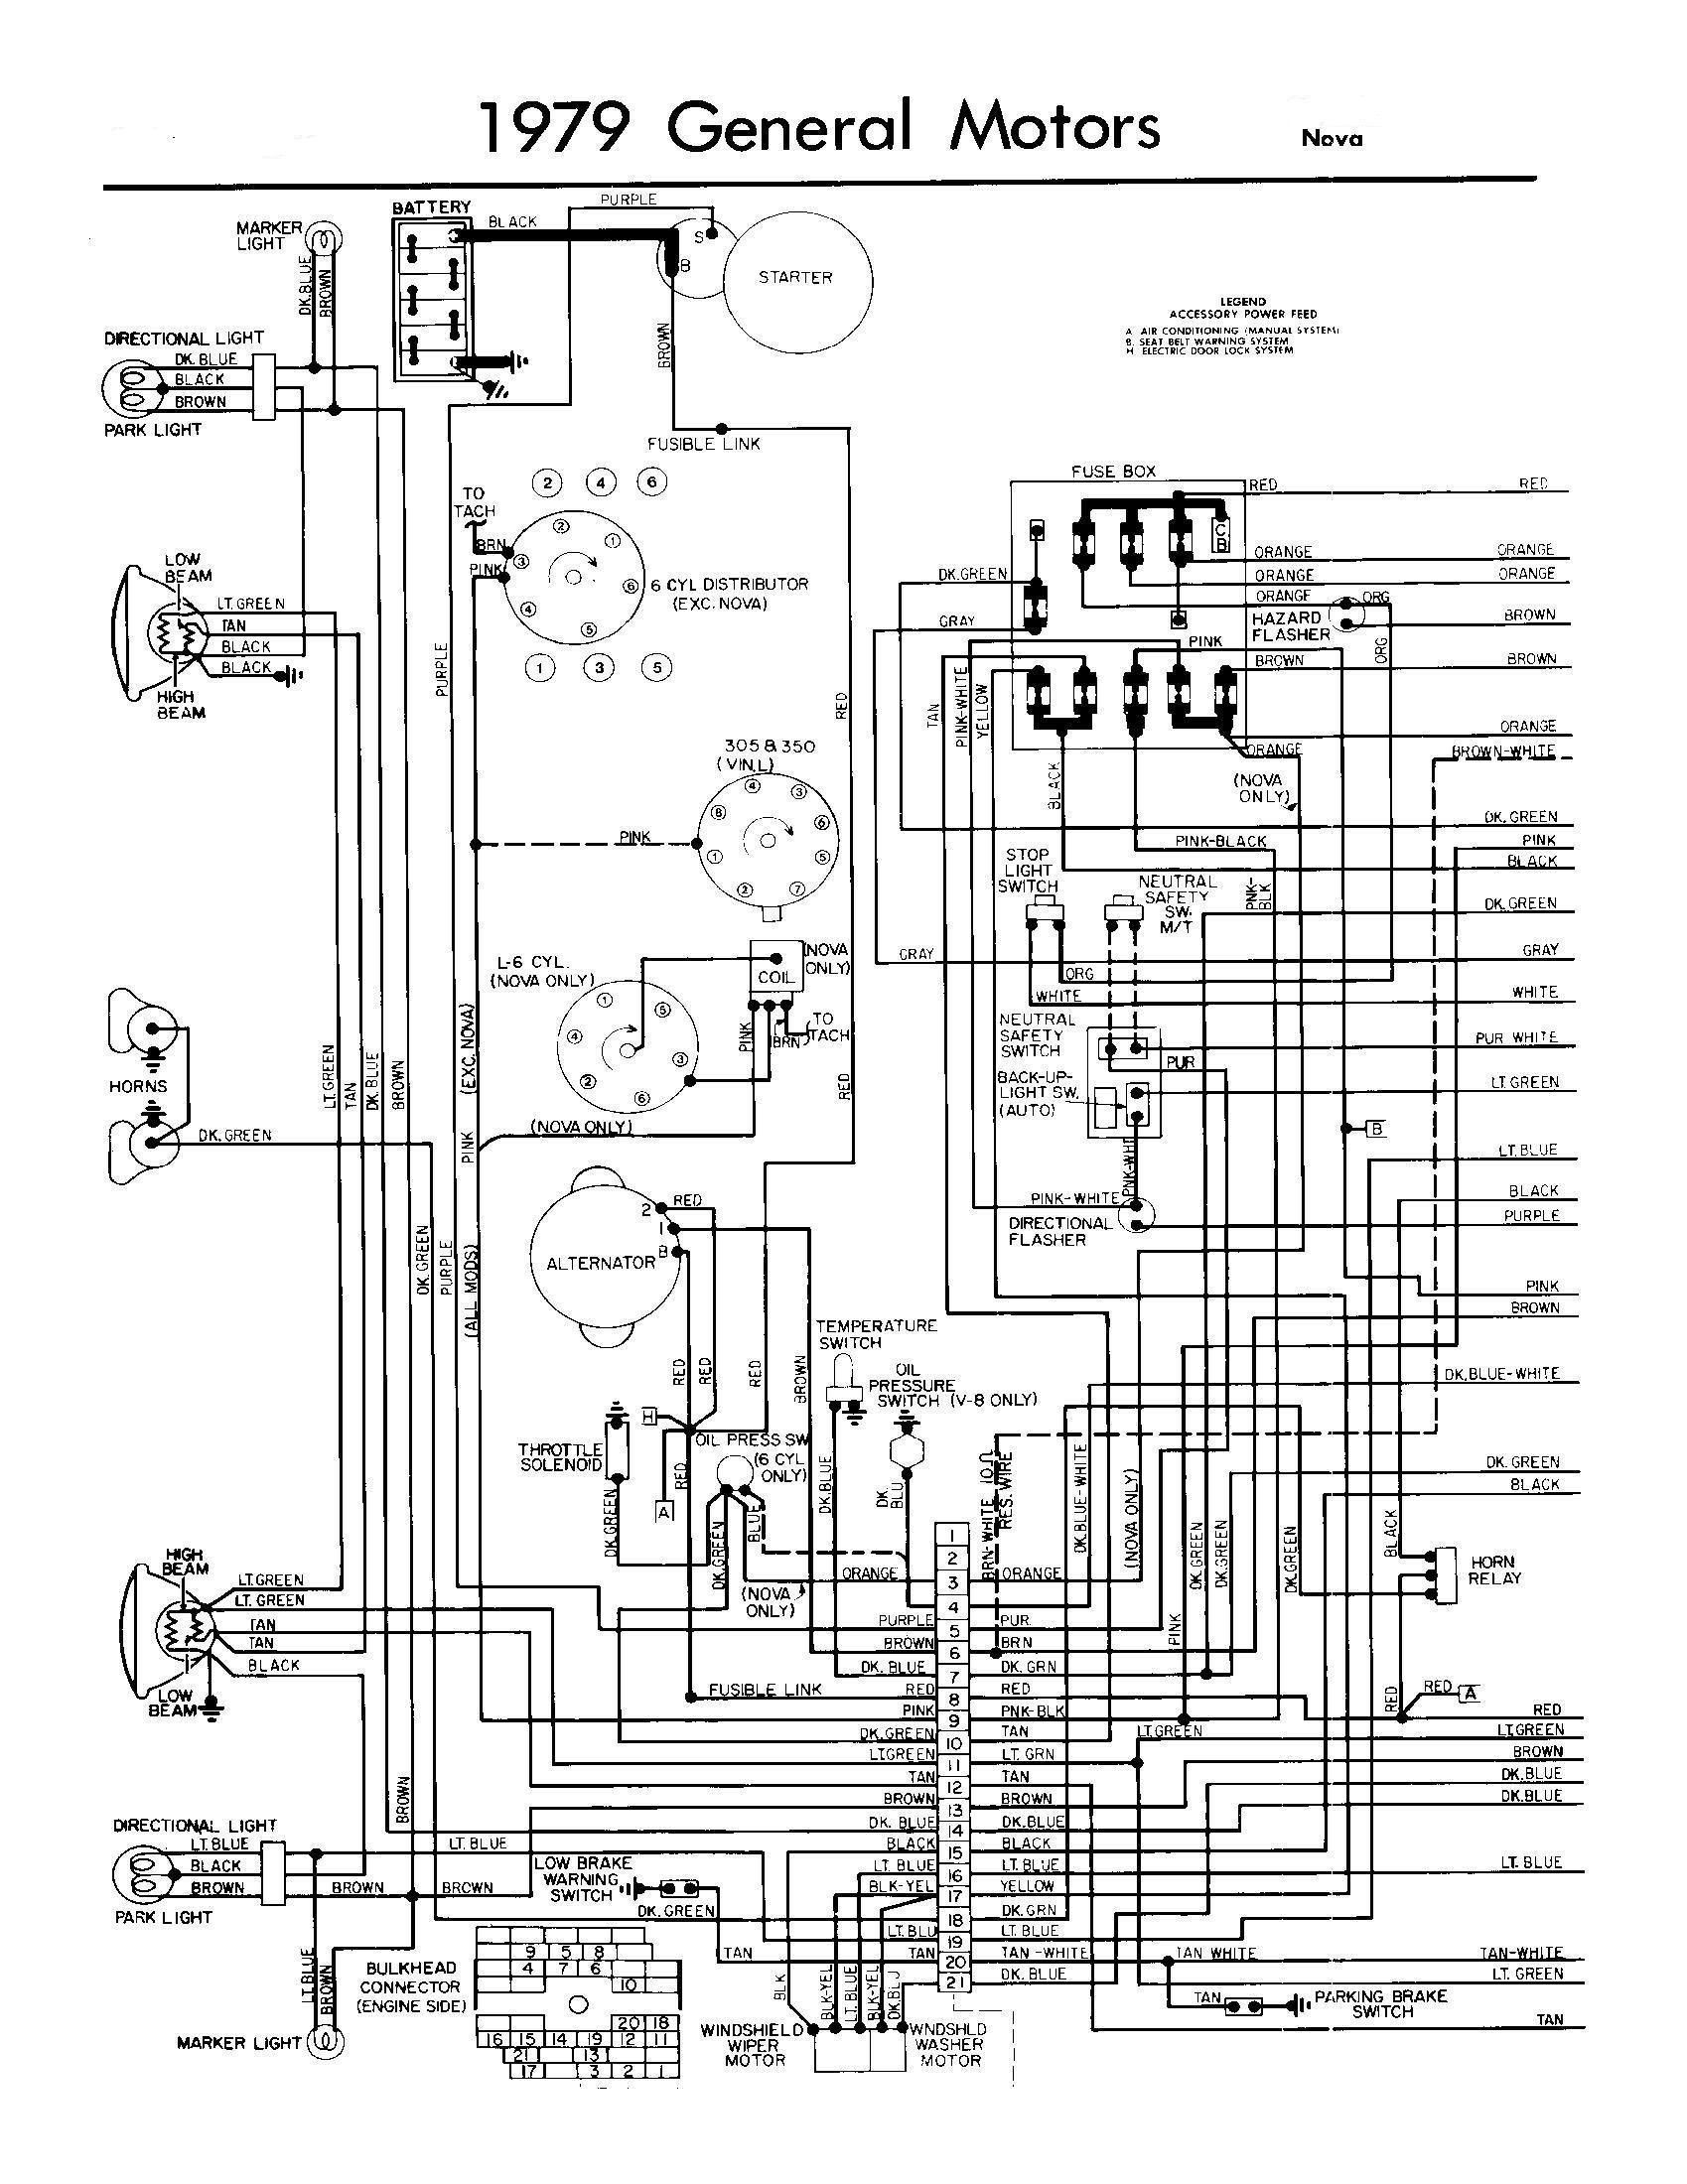 Toyota 22r Engine Diagram 1989 toyota Van Engine Diagram Wiring Diagram Datasource Of Toyota 22r Engine Diagram toyota Hilux 22r Engine Diagram Wiring Diagram Datasource